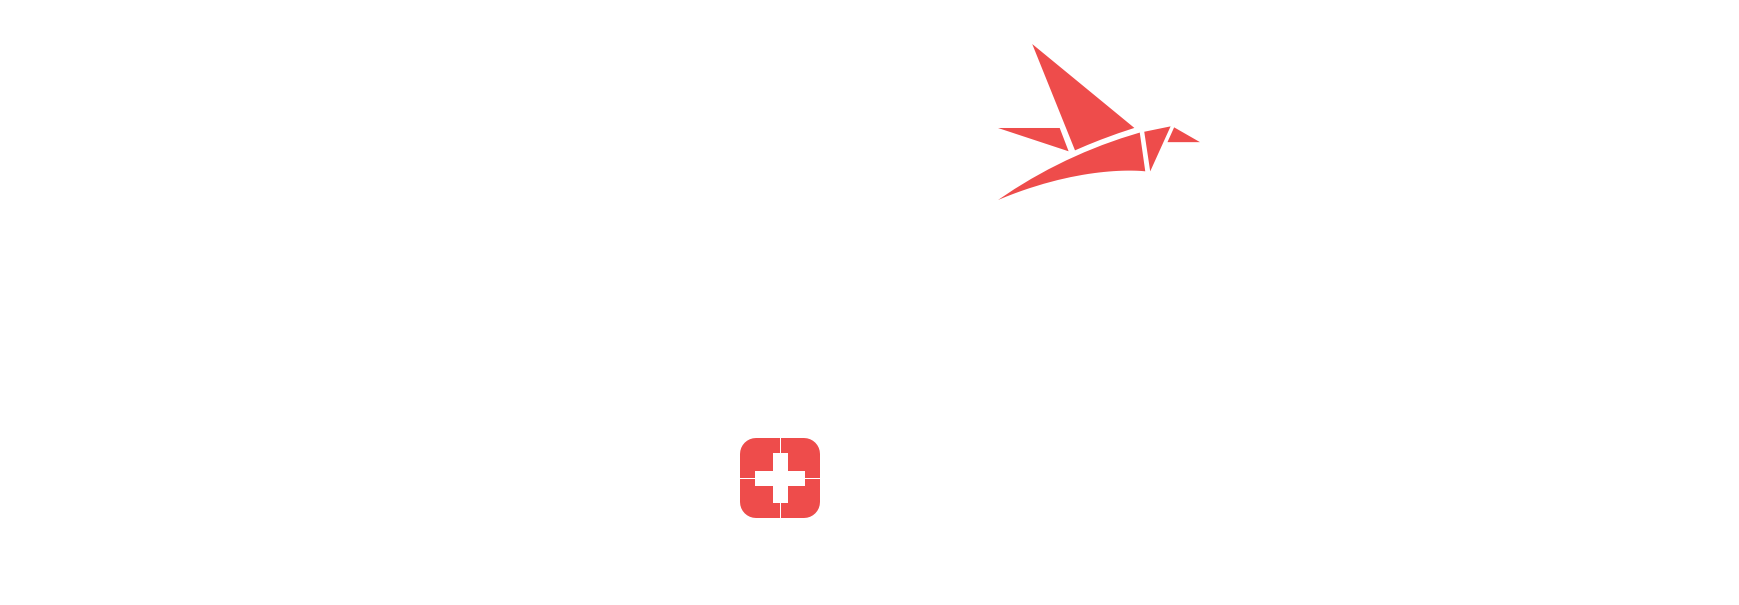 travelerbuddy swiss travel solutions